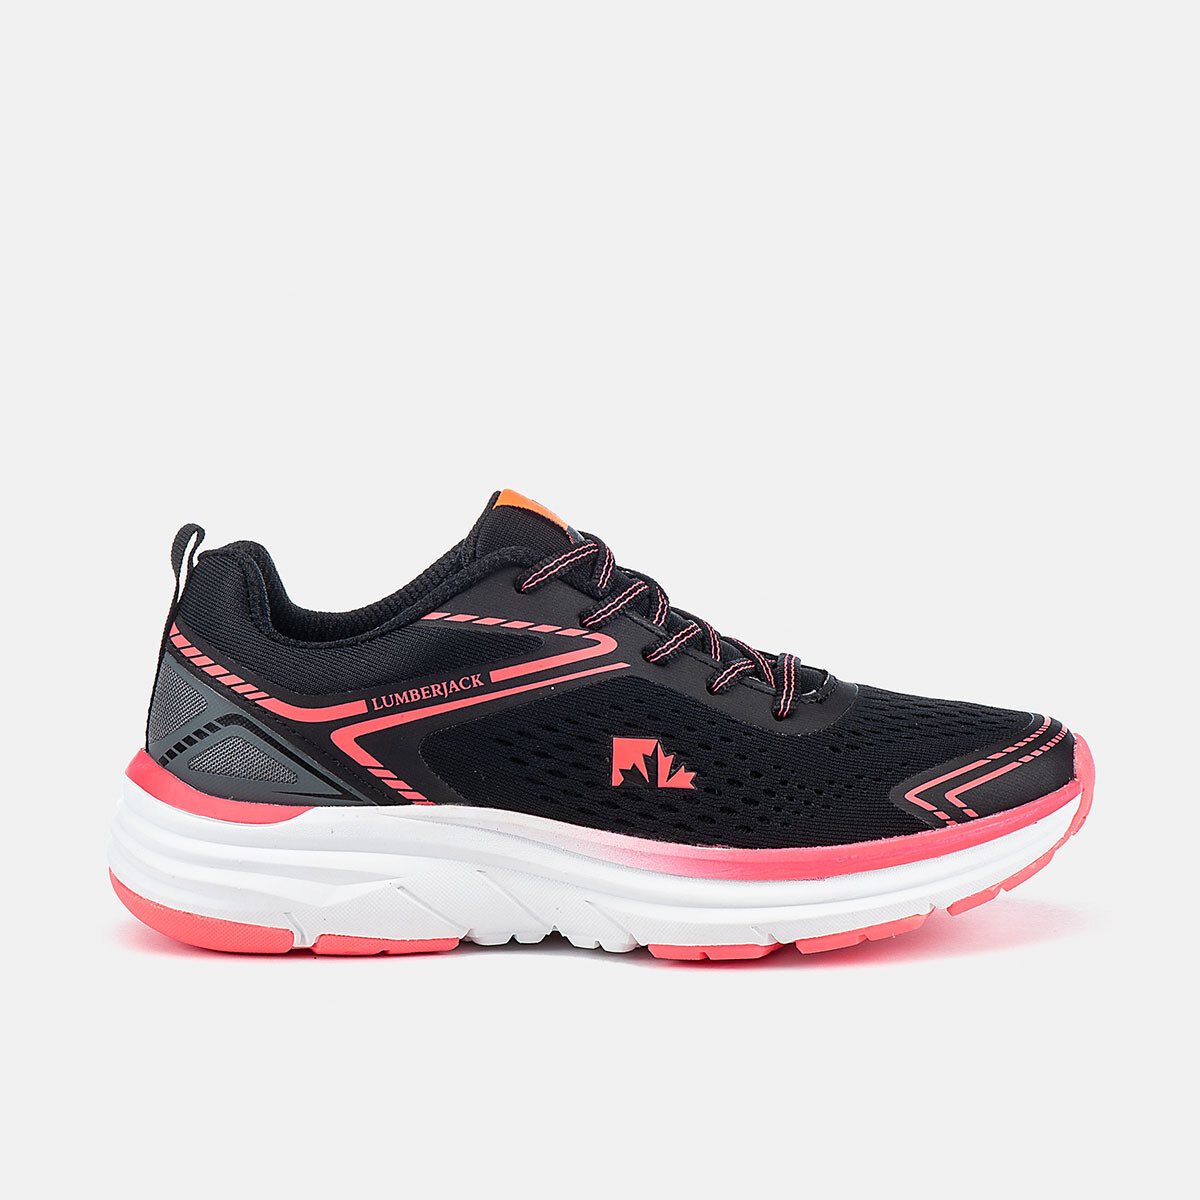 LAURYN BLACK Woman Running shoes